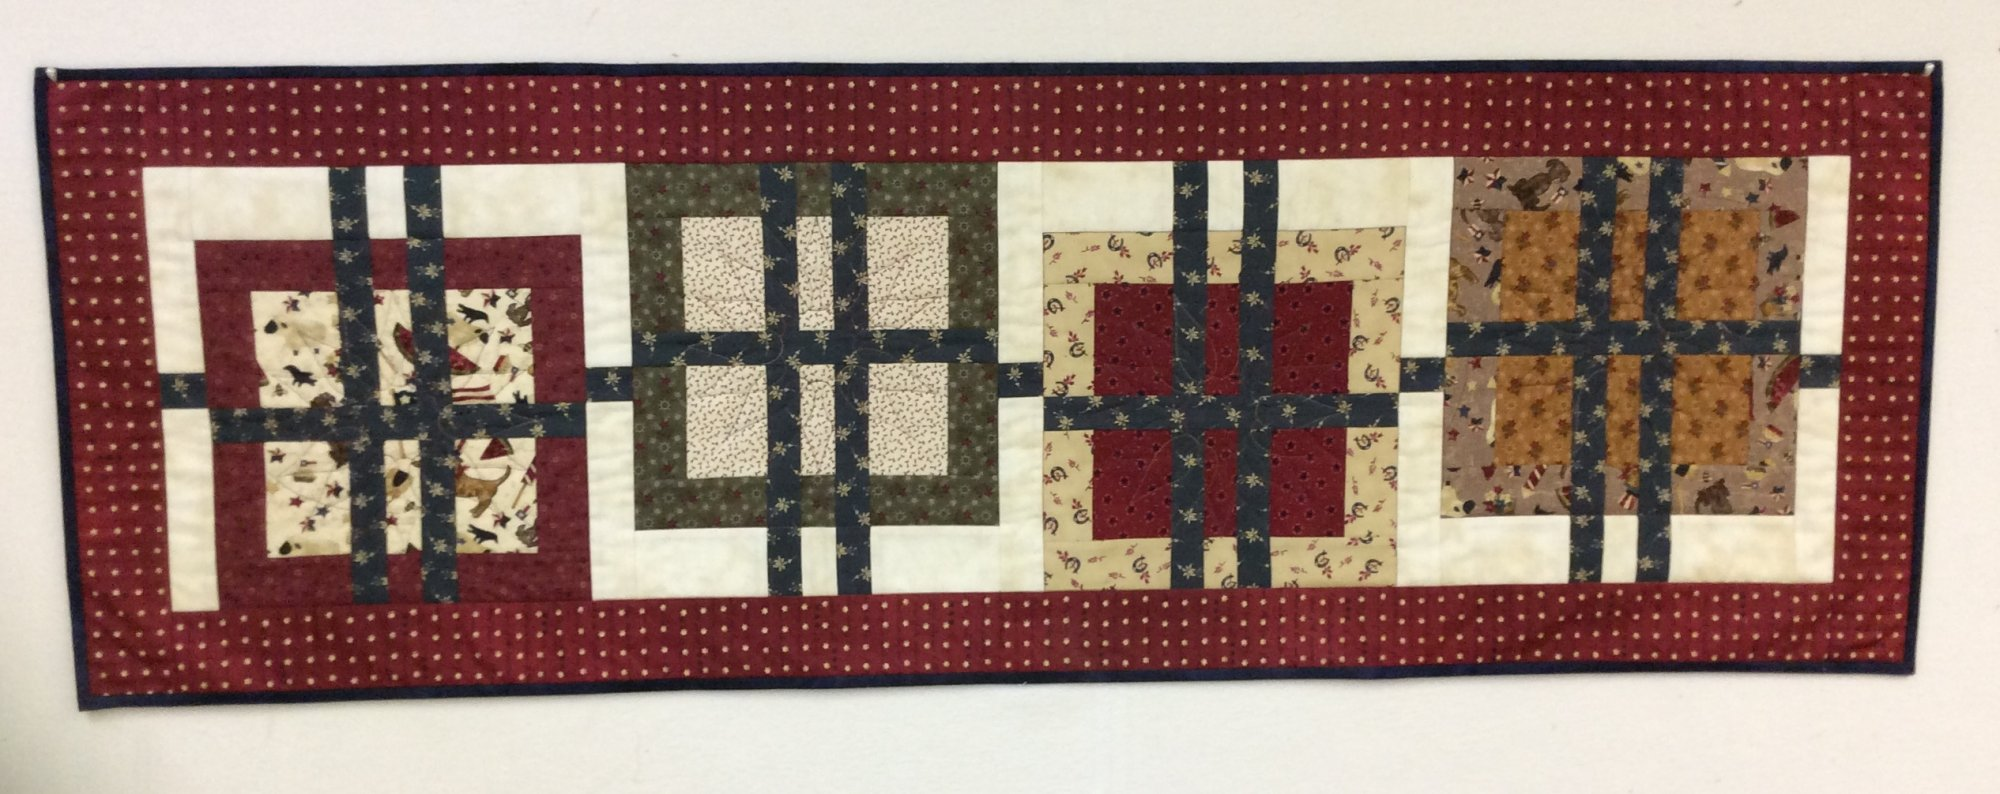 Woven Table Runner from Trendy Table 2 -- PGK